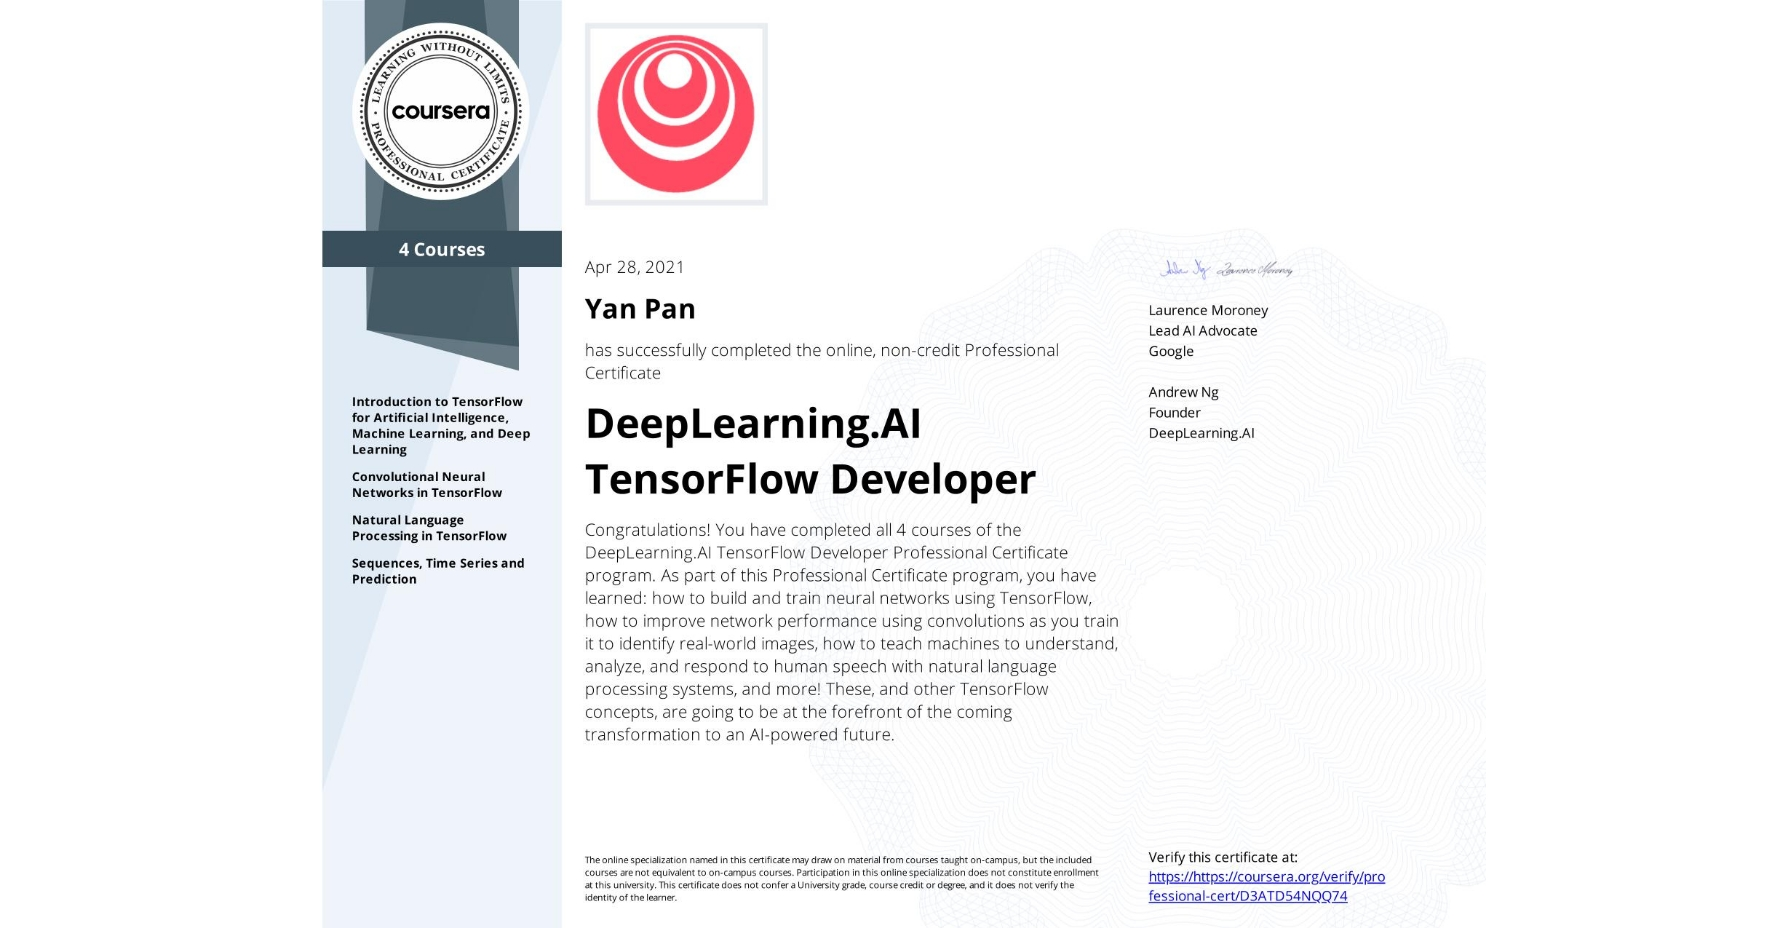 View certificate for Yan Pan, DeepLearning.AI TensorFlow Developer, offered through Coursera. Congratulations! You have completed all 4 courses of the DeepLearning.AI TensorFlow Developer Professional Certificate program.   As part of this Professional Certificate program, you have learned: how to build and train neural networks using TensorFlow, how to improve network performance using convolutions as you train it to identify real-world images, how to teach machines to understand, analyze, and respond to human speech with natural language processing systems, and more!  These, and other TensorFlow concepts, are going to be at the forefront of the coming transformation to an AI-powered future.